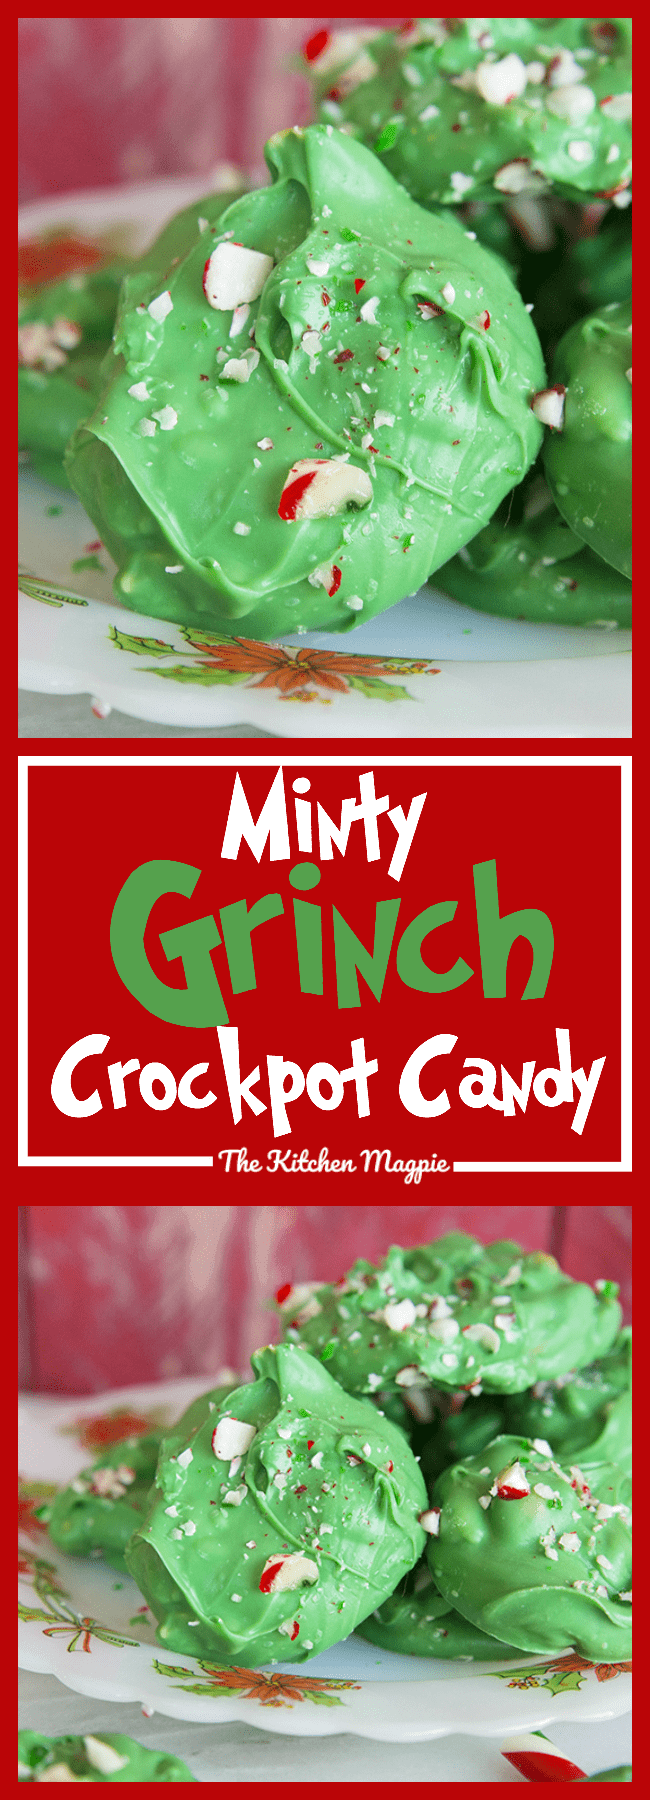 My new Minty Grinch Crockpot Candy is sure to be a family favourite for Christmas and it couldn't be easier to make! Simply put it in the crockpot and in an hour you have candy!